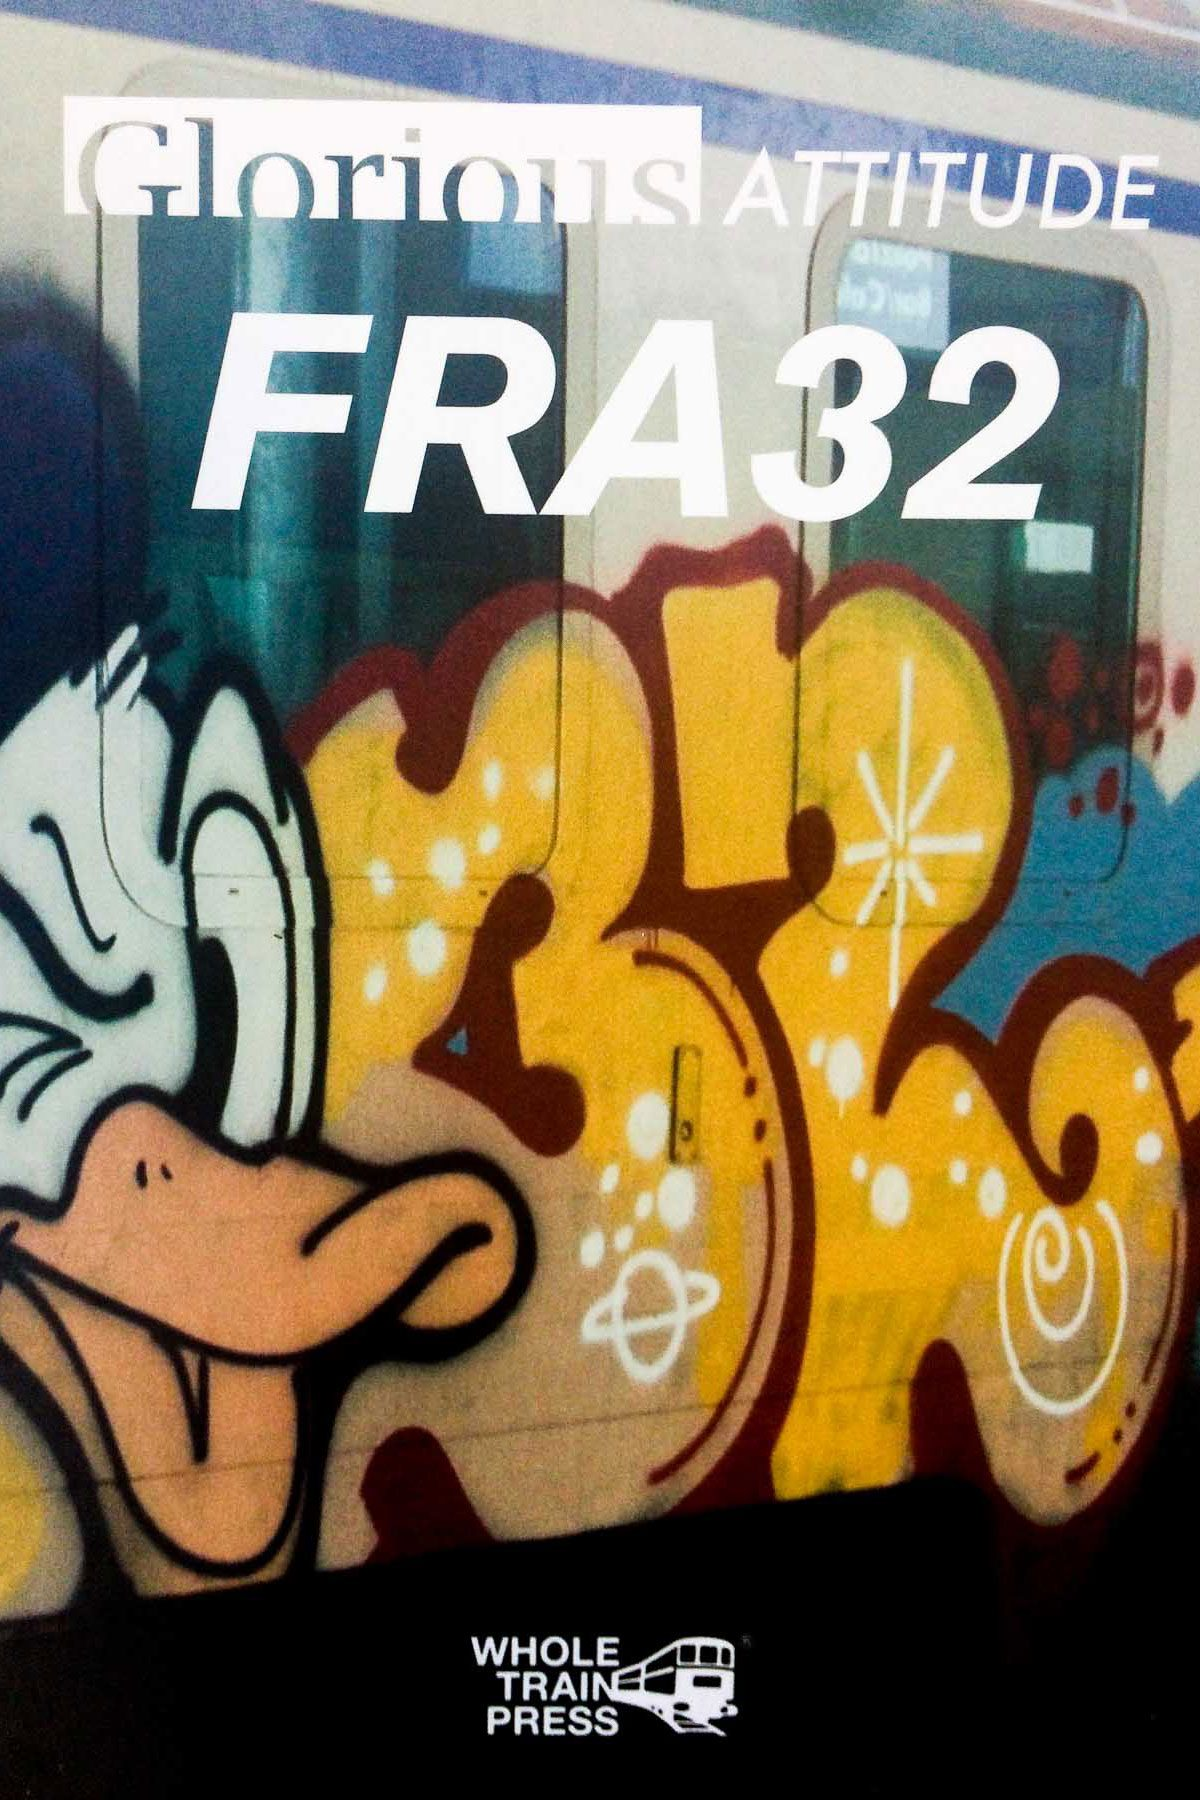 FRA32 - Glorious Attitude di Wholetrain Press